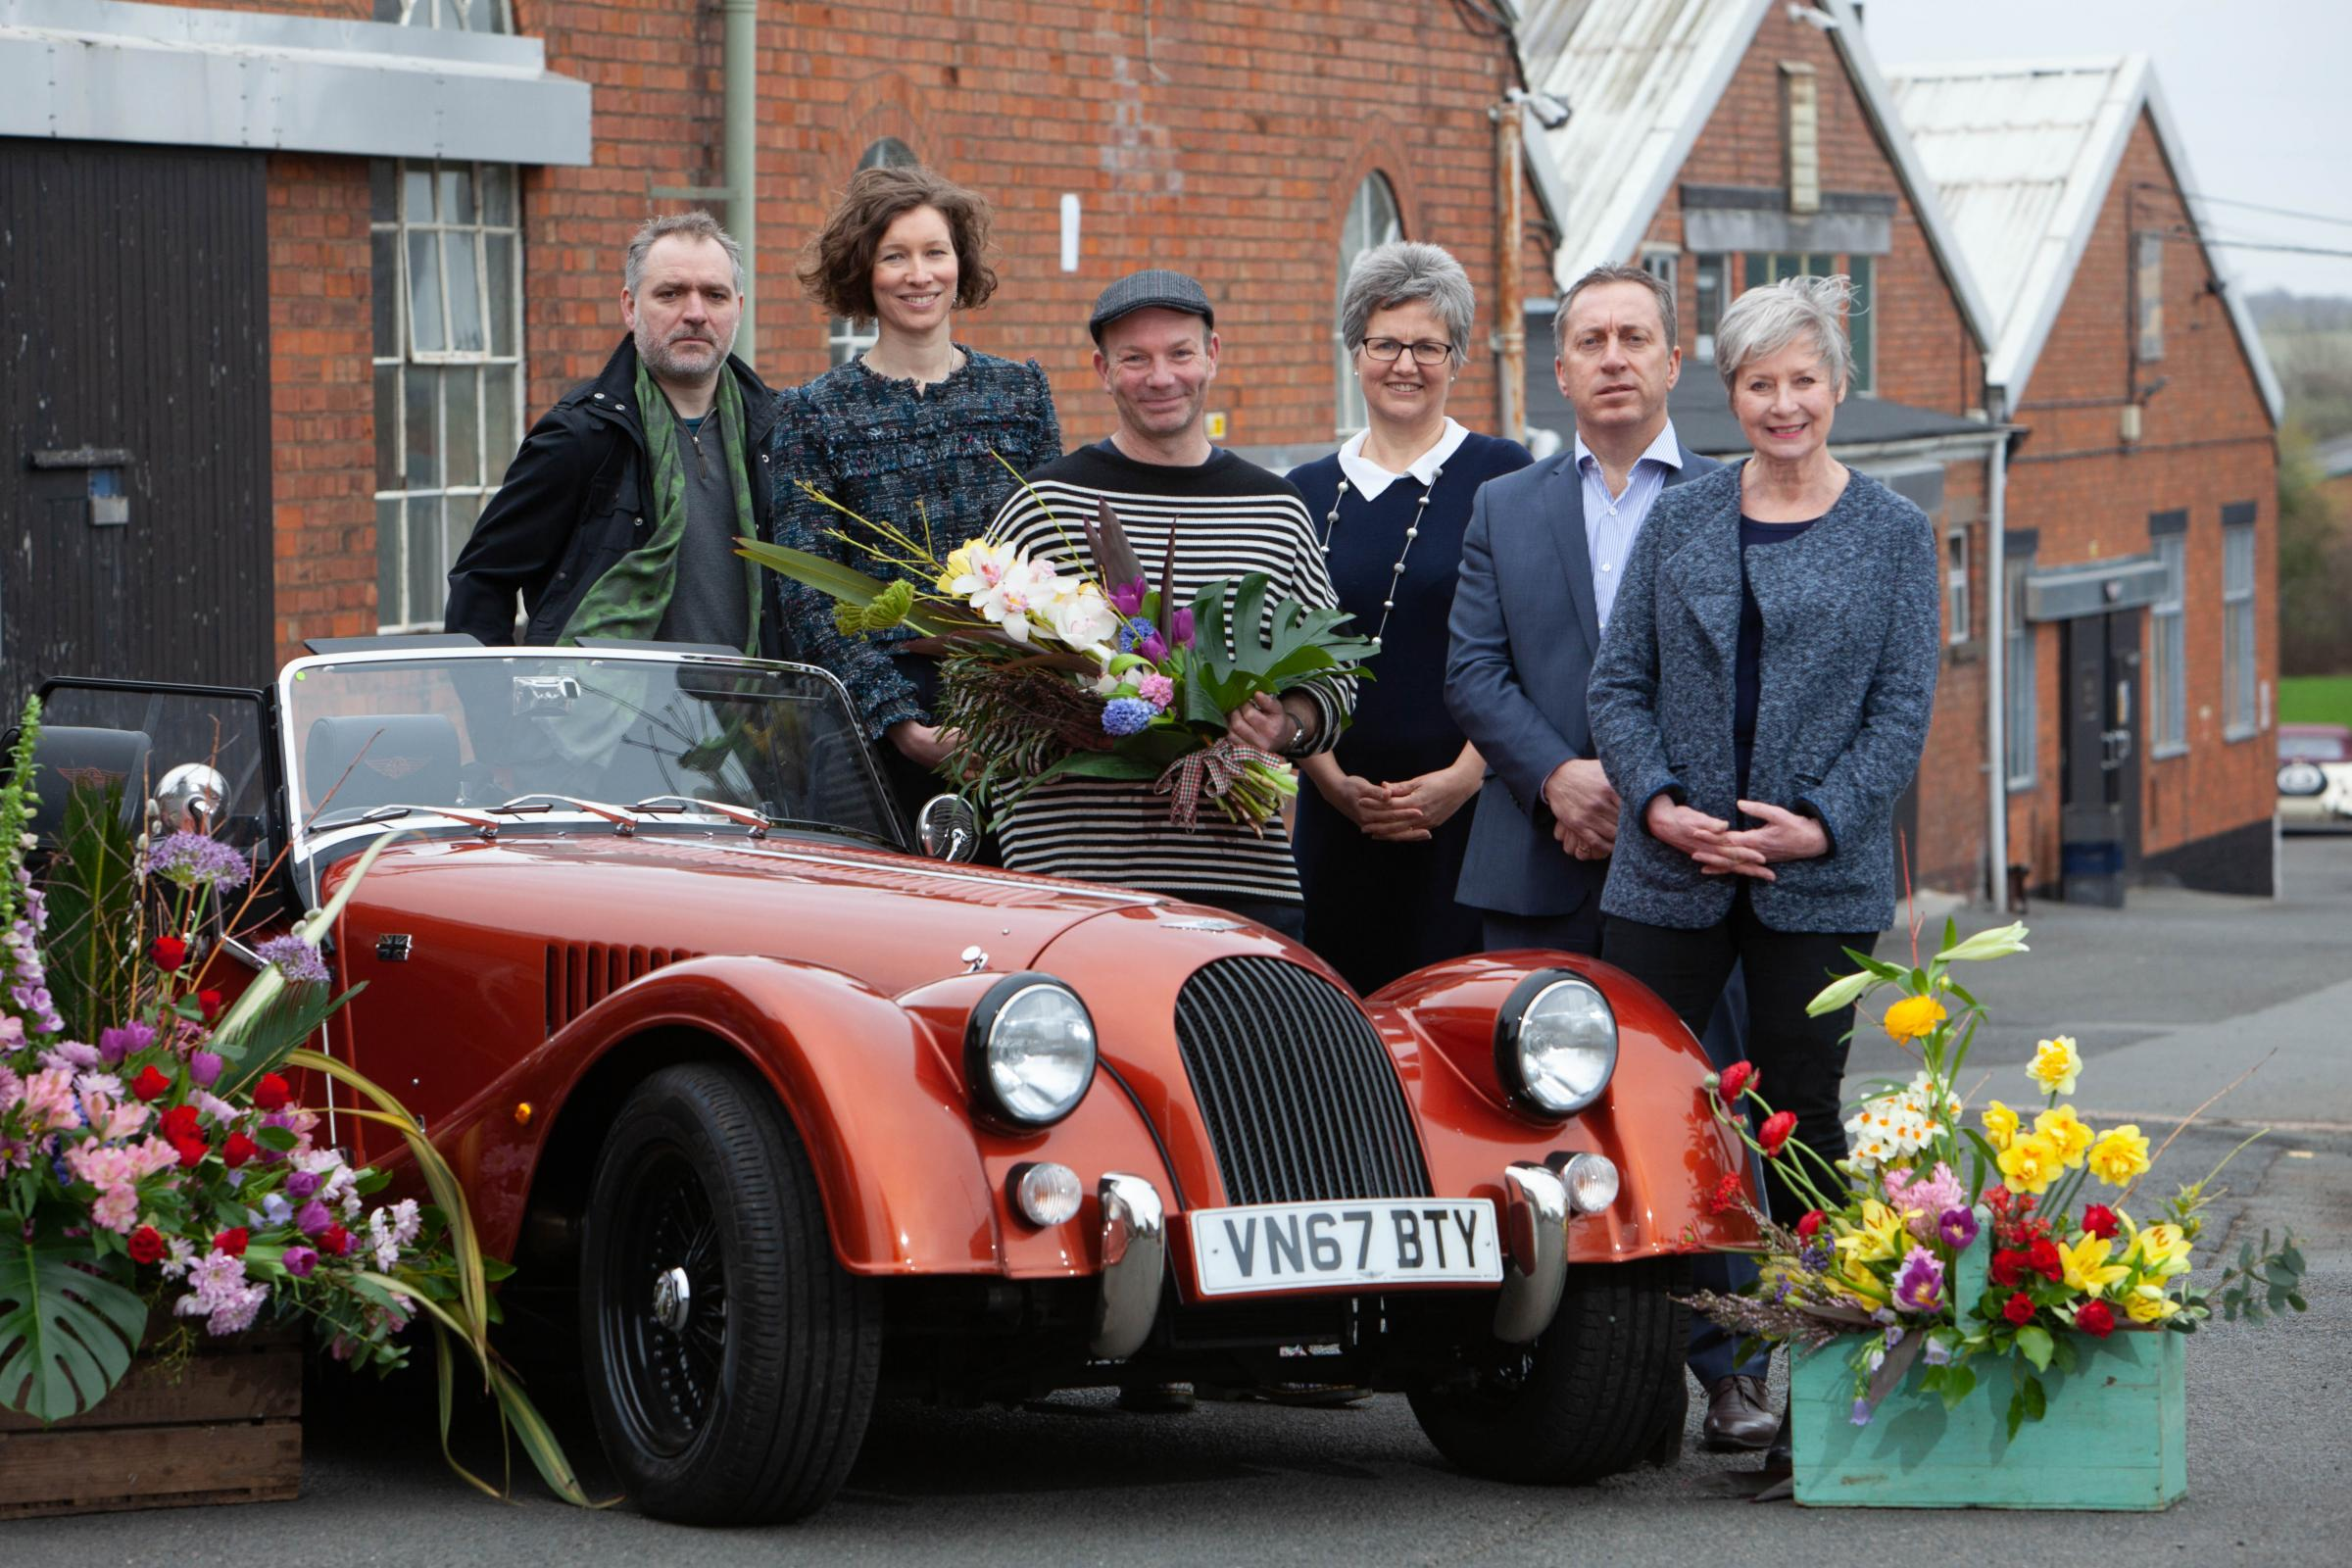 SPECTACULAR: Floral designer Jonathan Moseley (in front) with Nick and Julia Davies from the Cottage in the Wood, Diana Walton of RHS Malvern, Morgan Motor Company Managing Director Steven Morgan and Museum of Royal Worcester Managing Director Amanda Savi